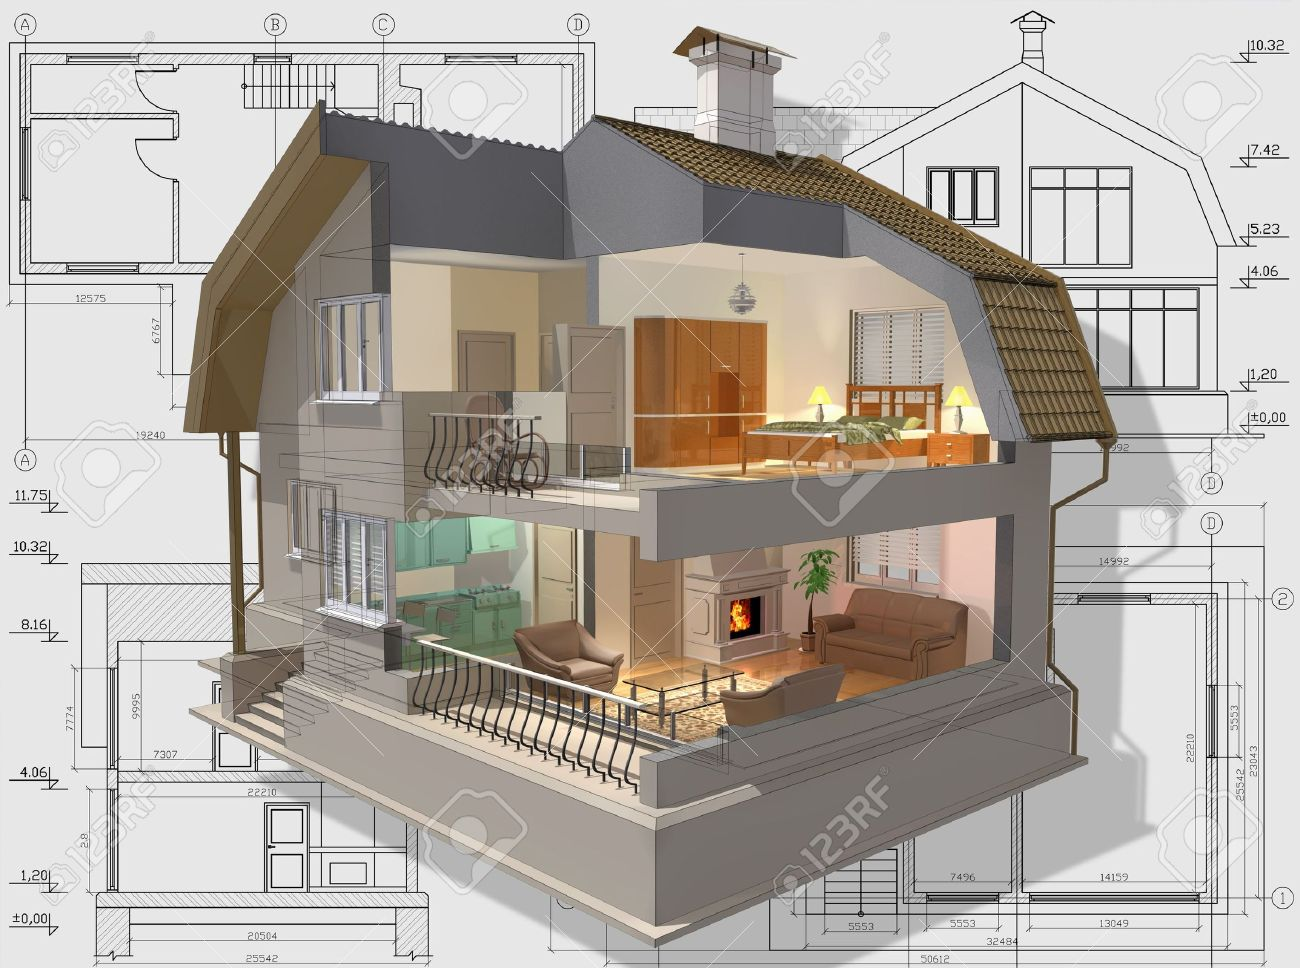 3d Isometric View The Cut Residential House On Architect S Drawing